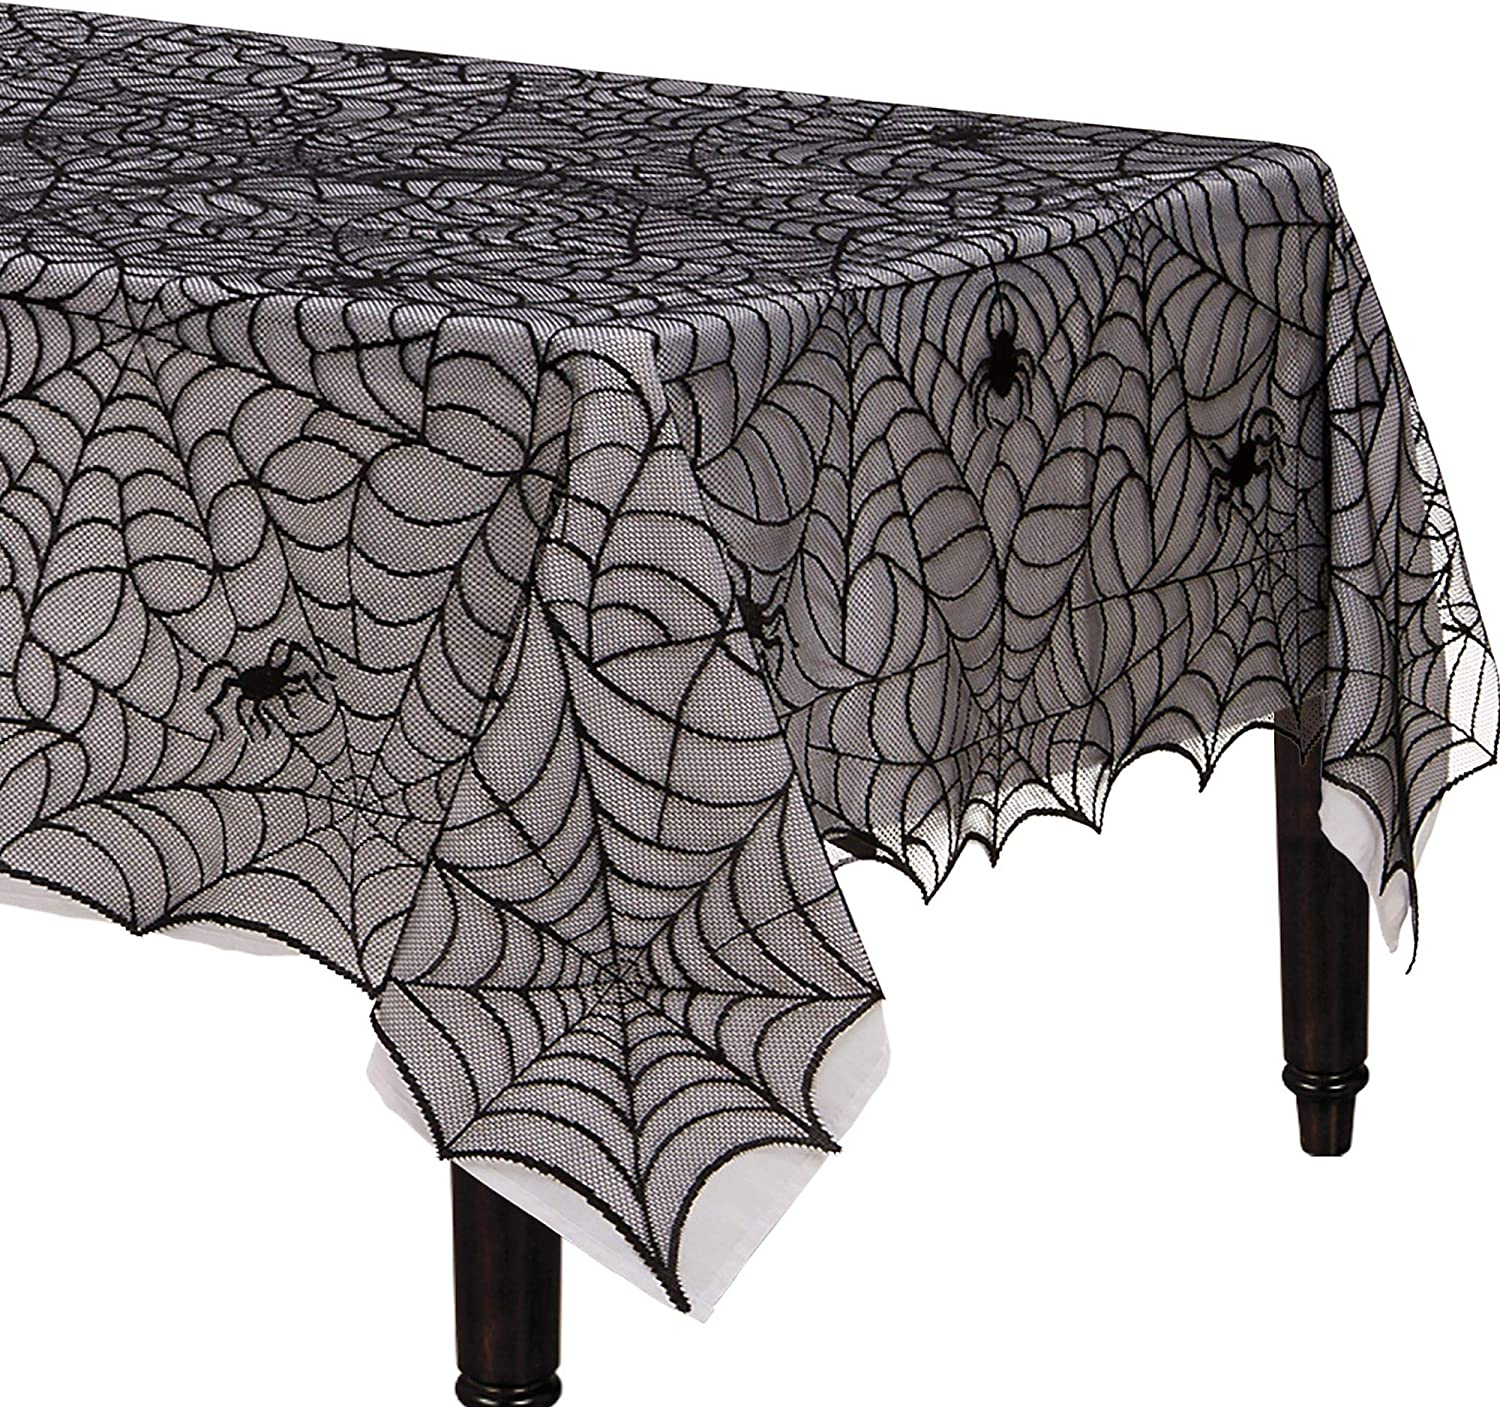 Spider Web Table Cover Halloween Tableware